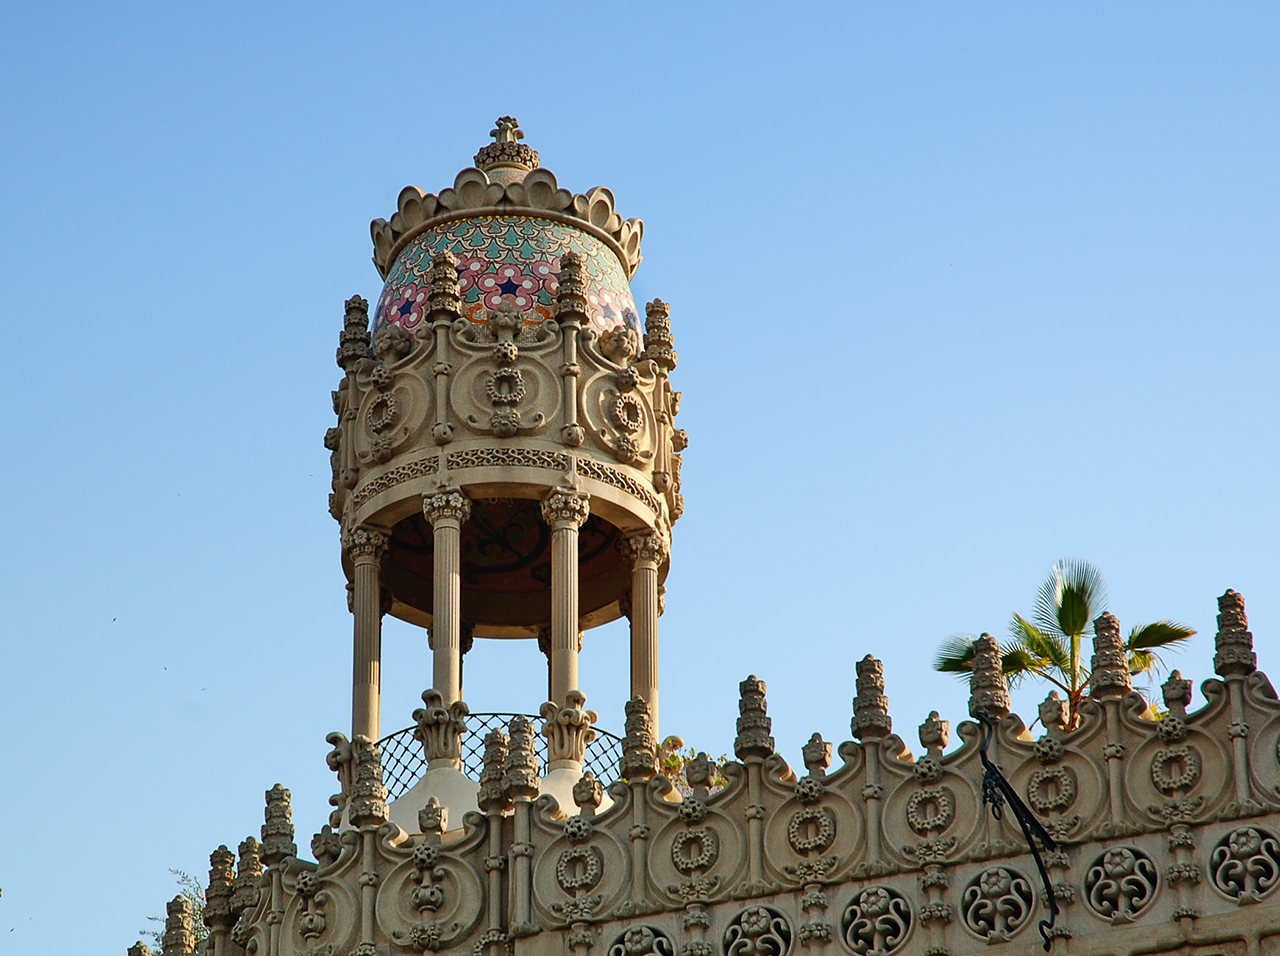 Detail of Casa Lleó Morera at Passeig de Gracia 35, Barcelona, Spain